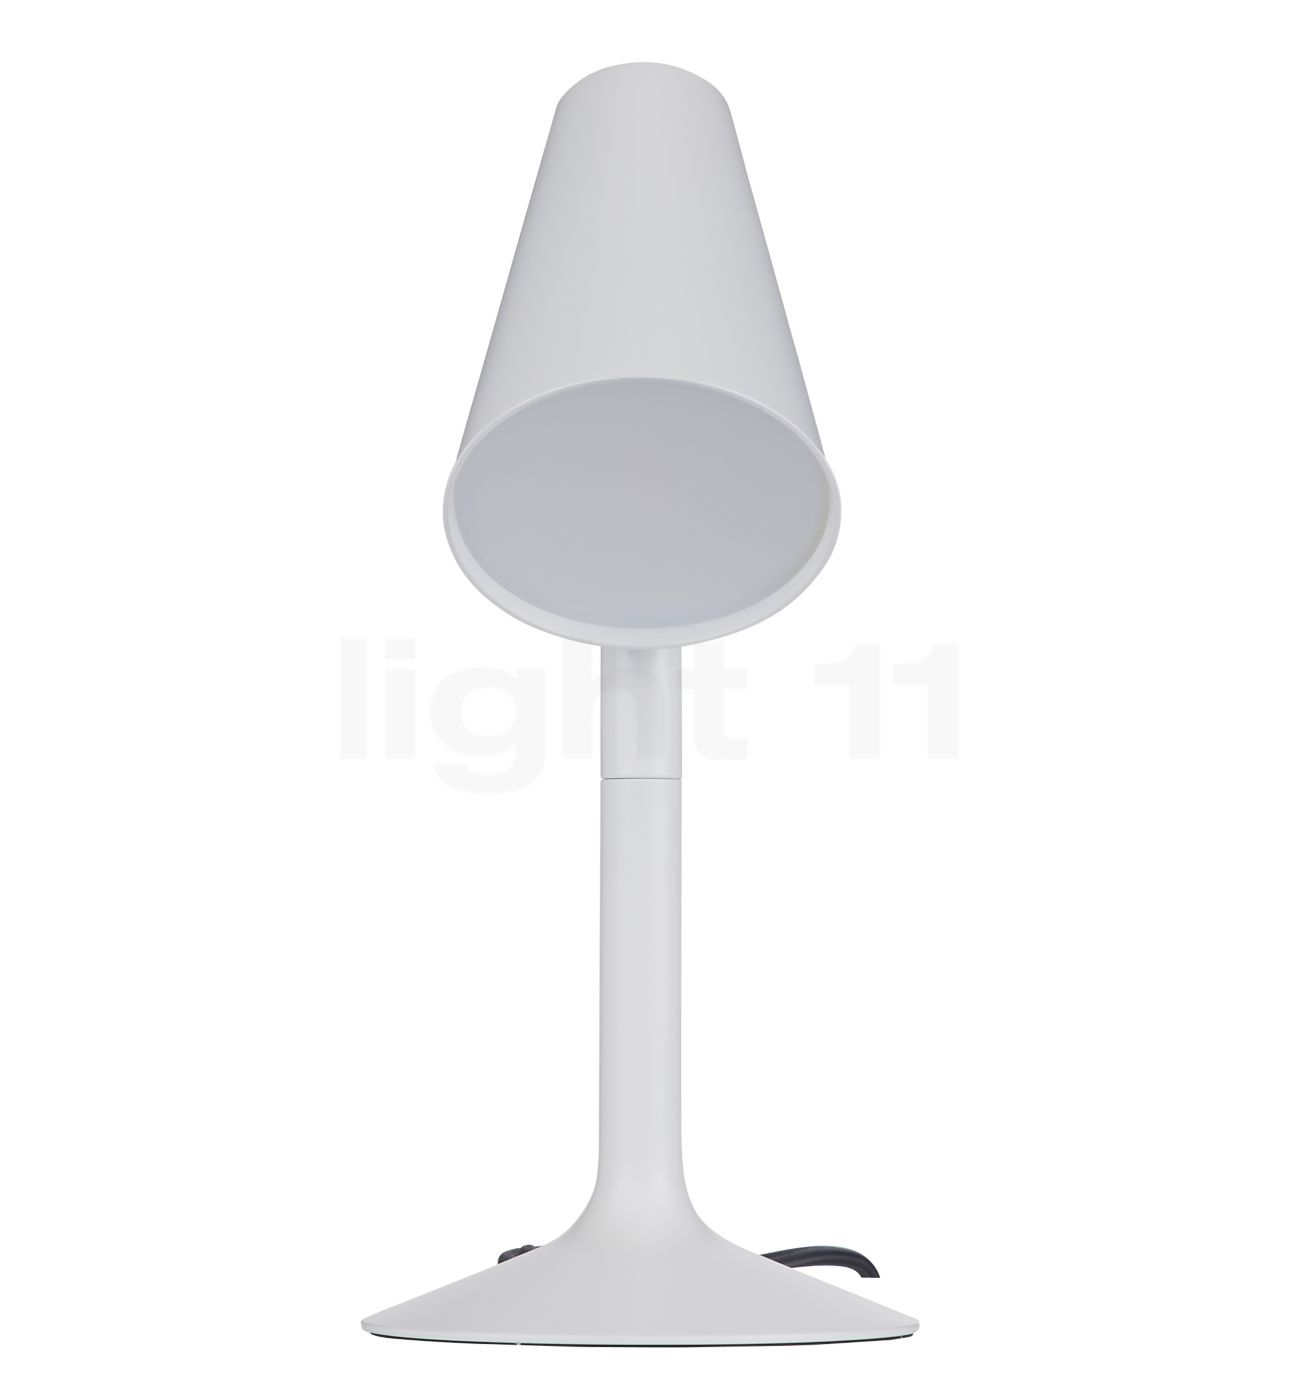 Philips piculet table lamp led reading lights light11 geotapseo Images